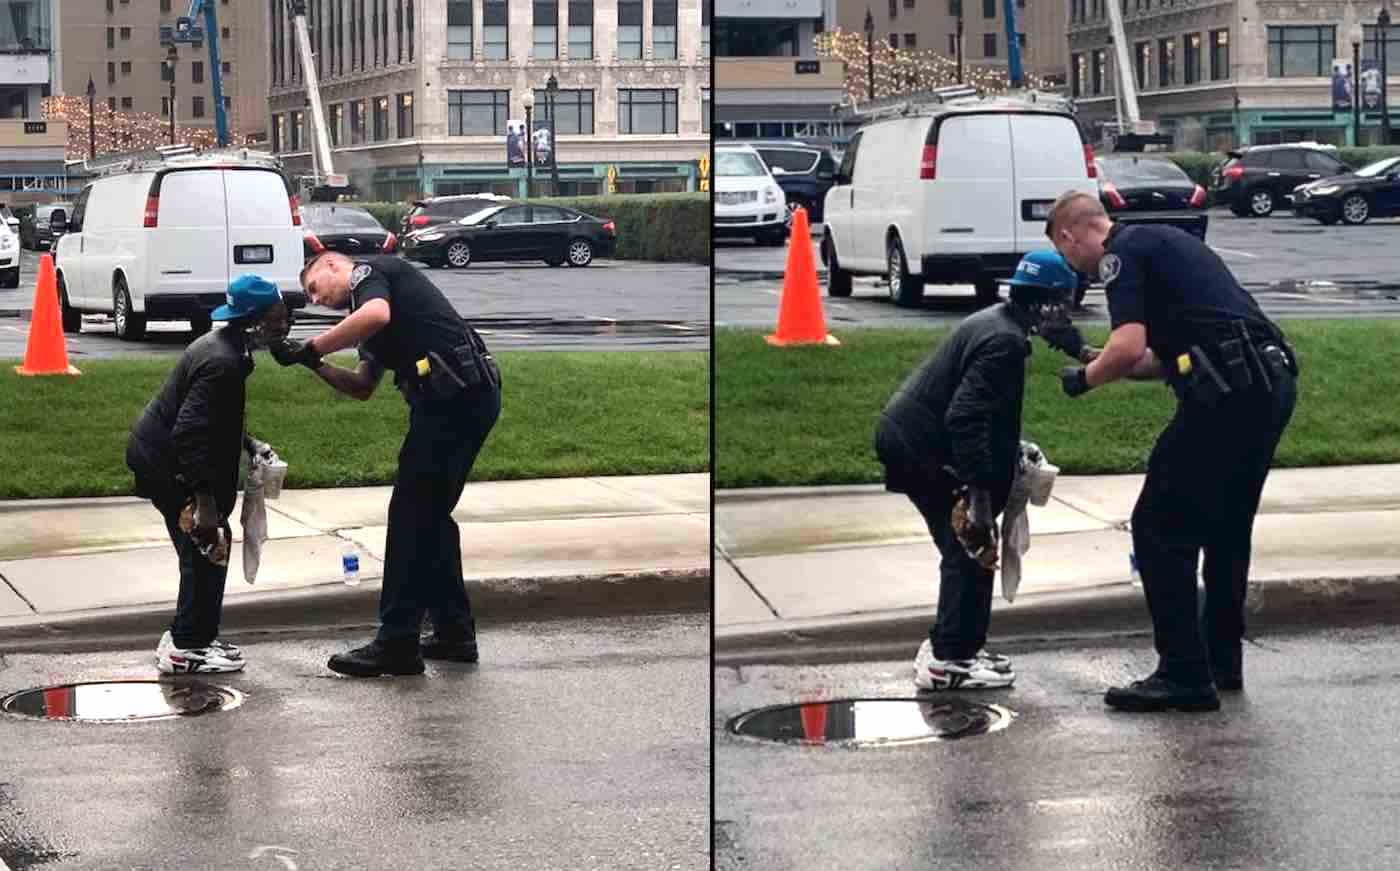 Police Officer Helps to Shave Homeless Man's Face in the Rain After Seeing Him Struggle Without a Mirror